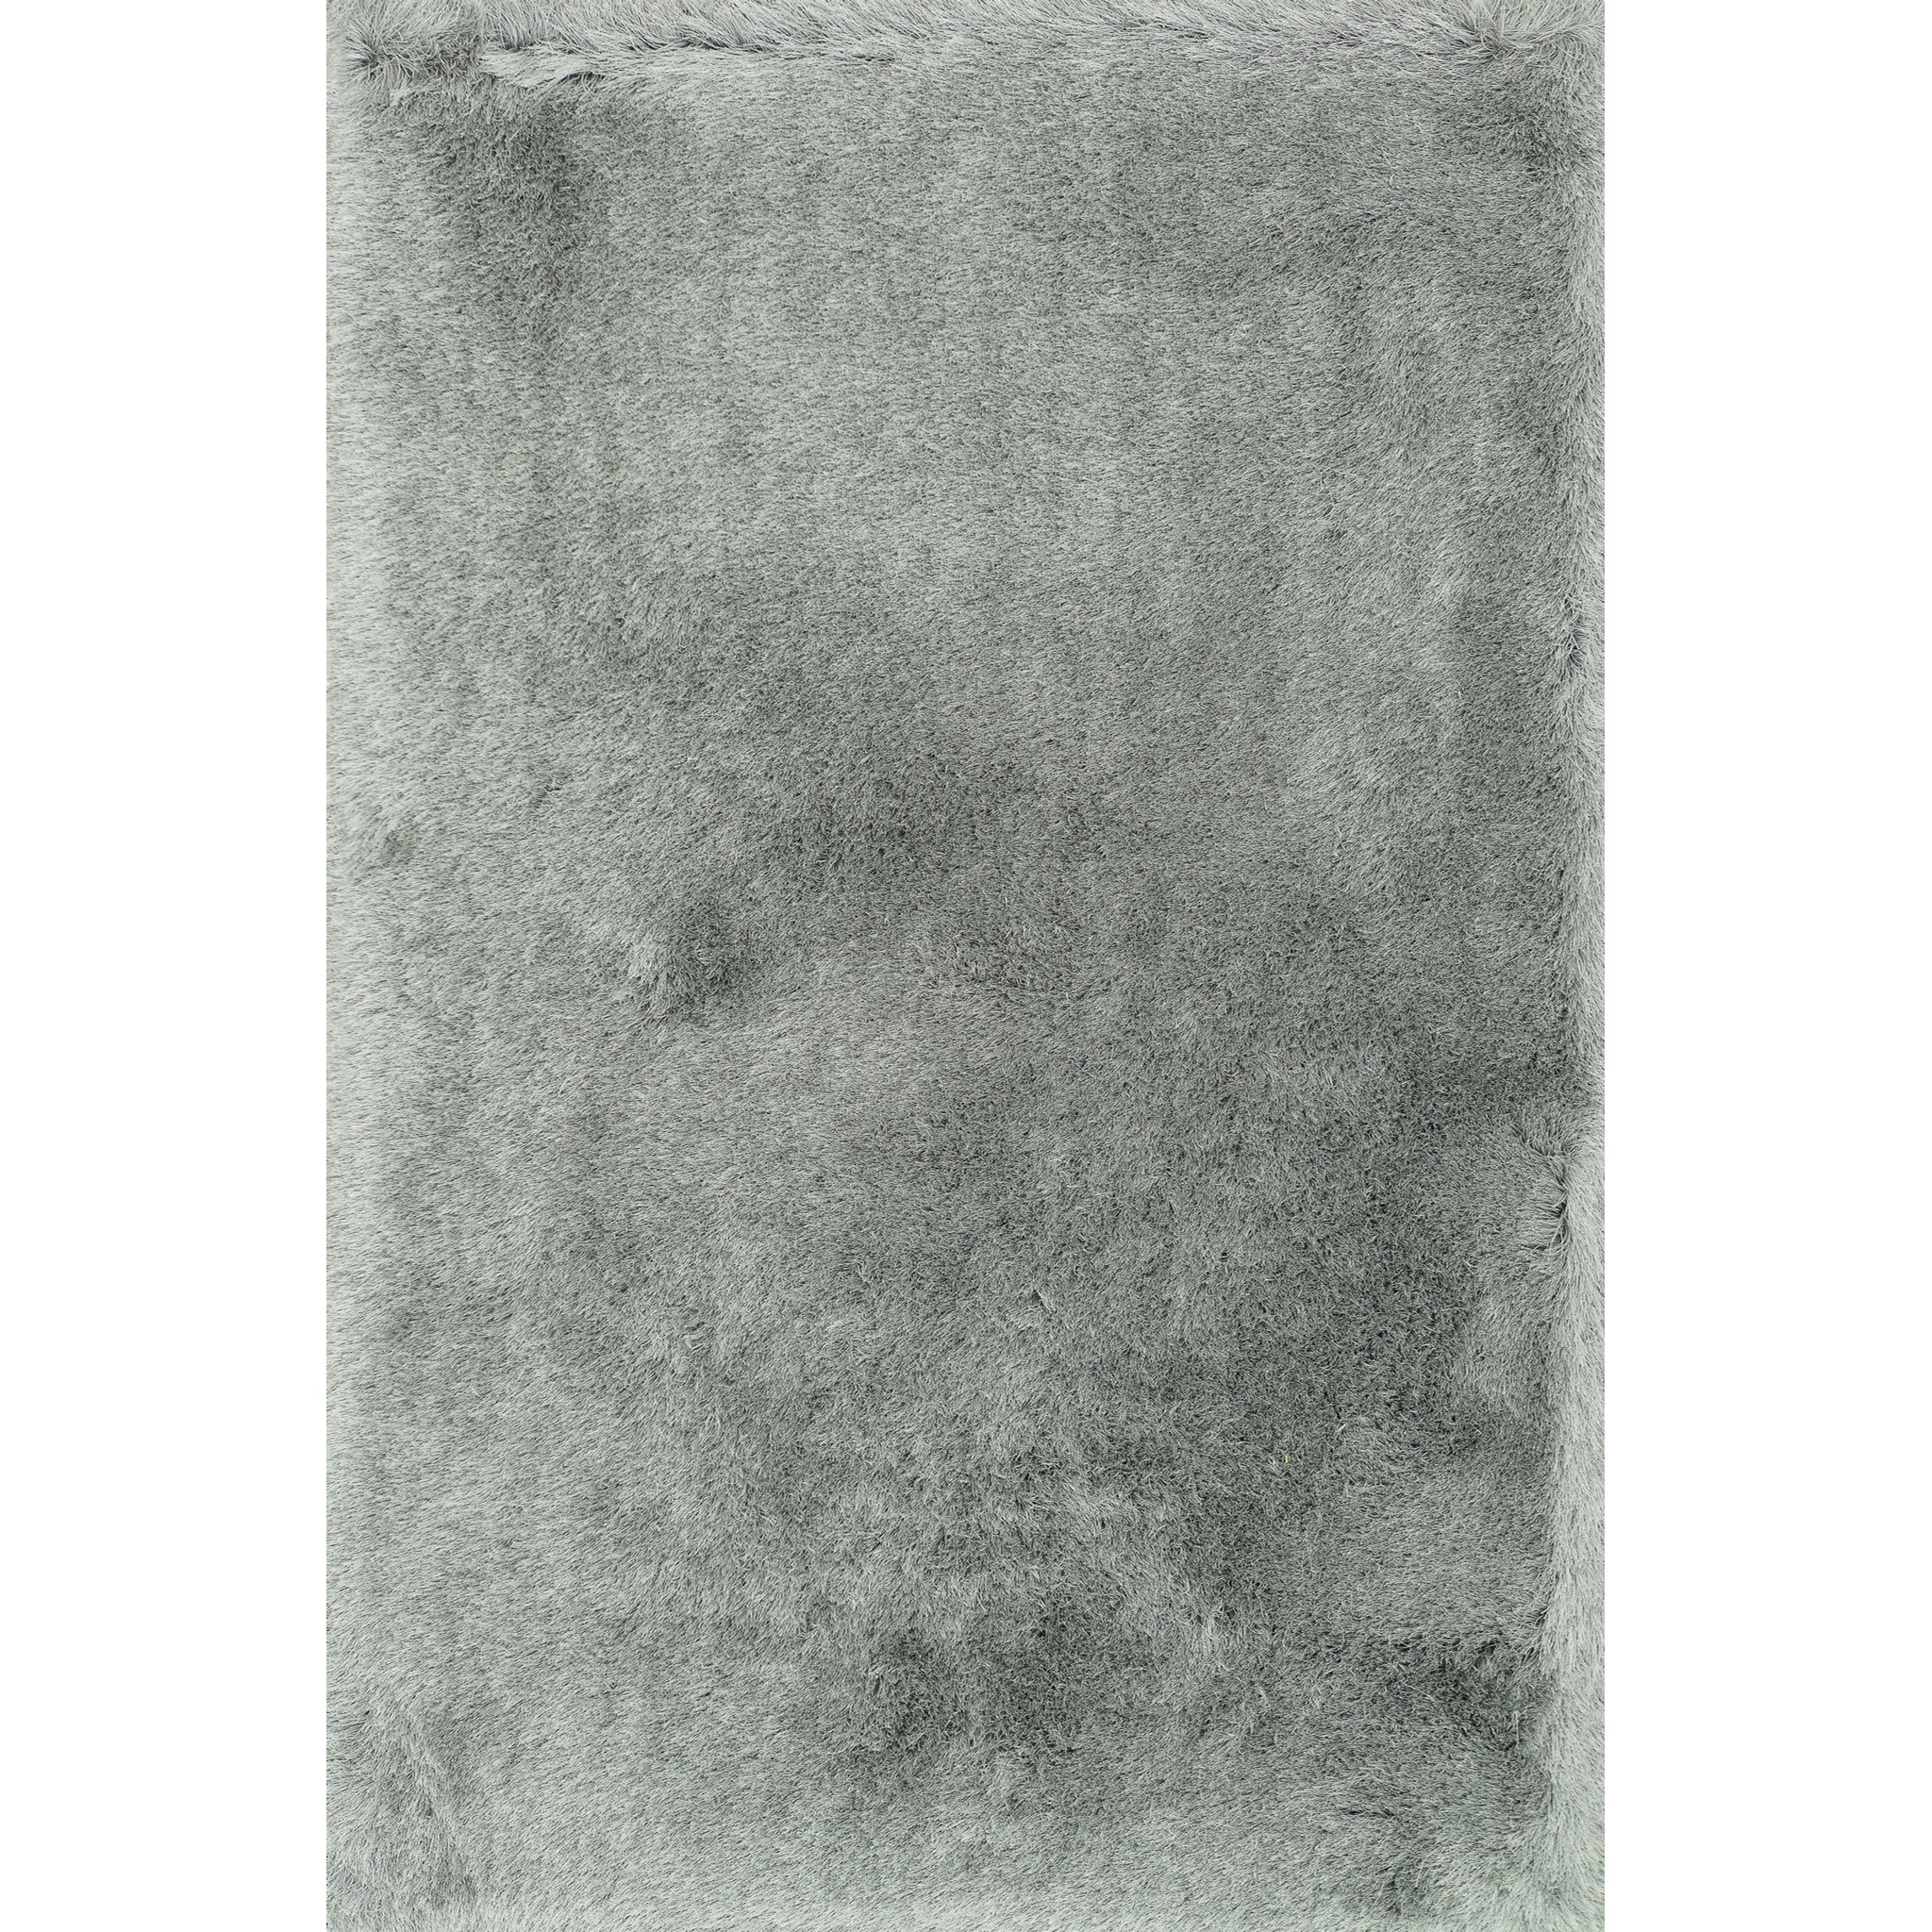 "Allure Shag 7'-6"" x 9'-6"" Area Rug by Loloi Rugs at Belfort Furniture"